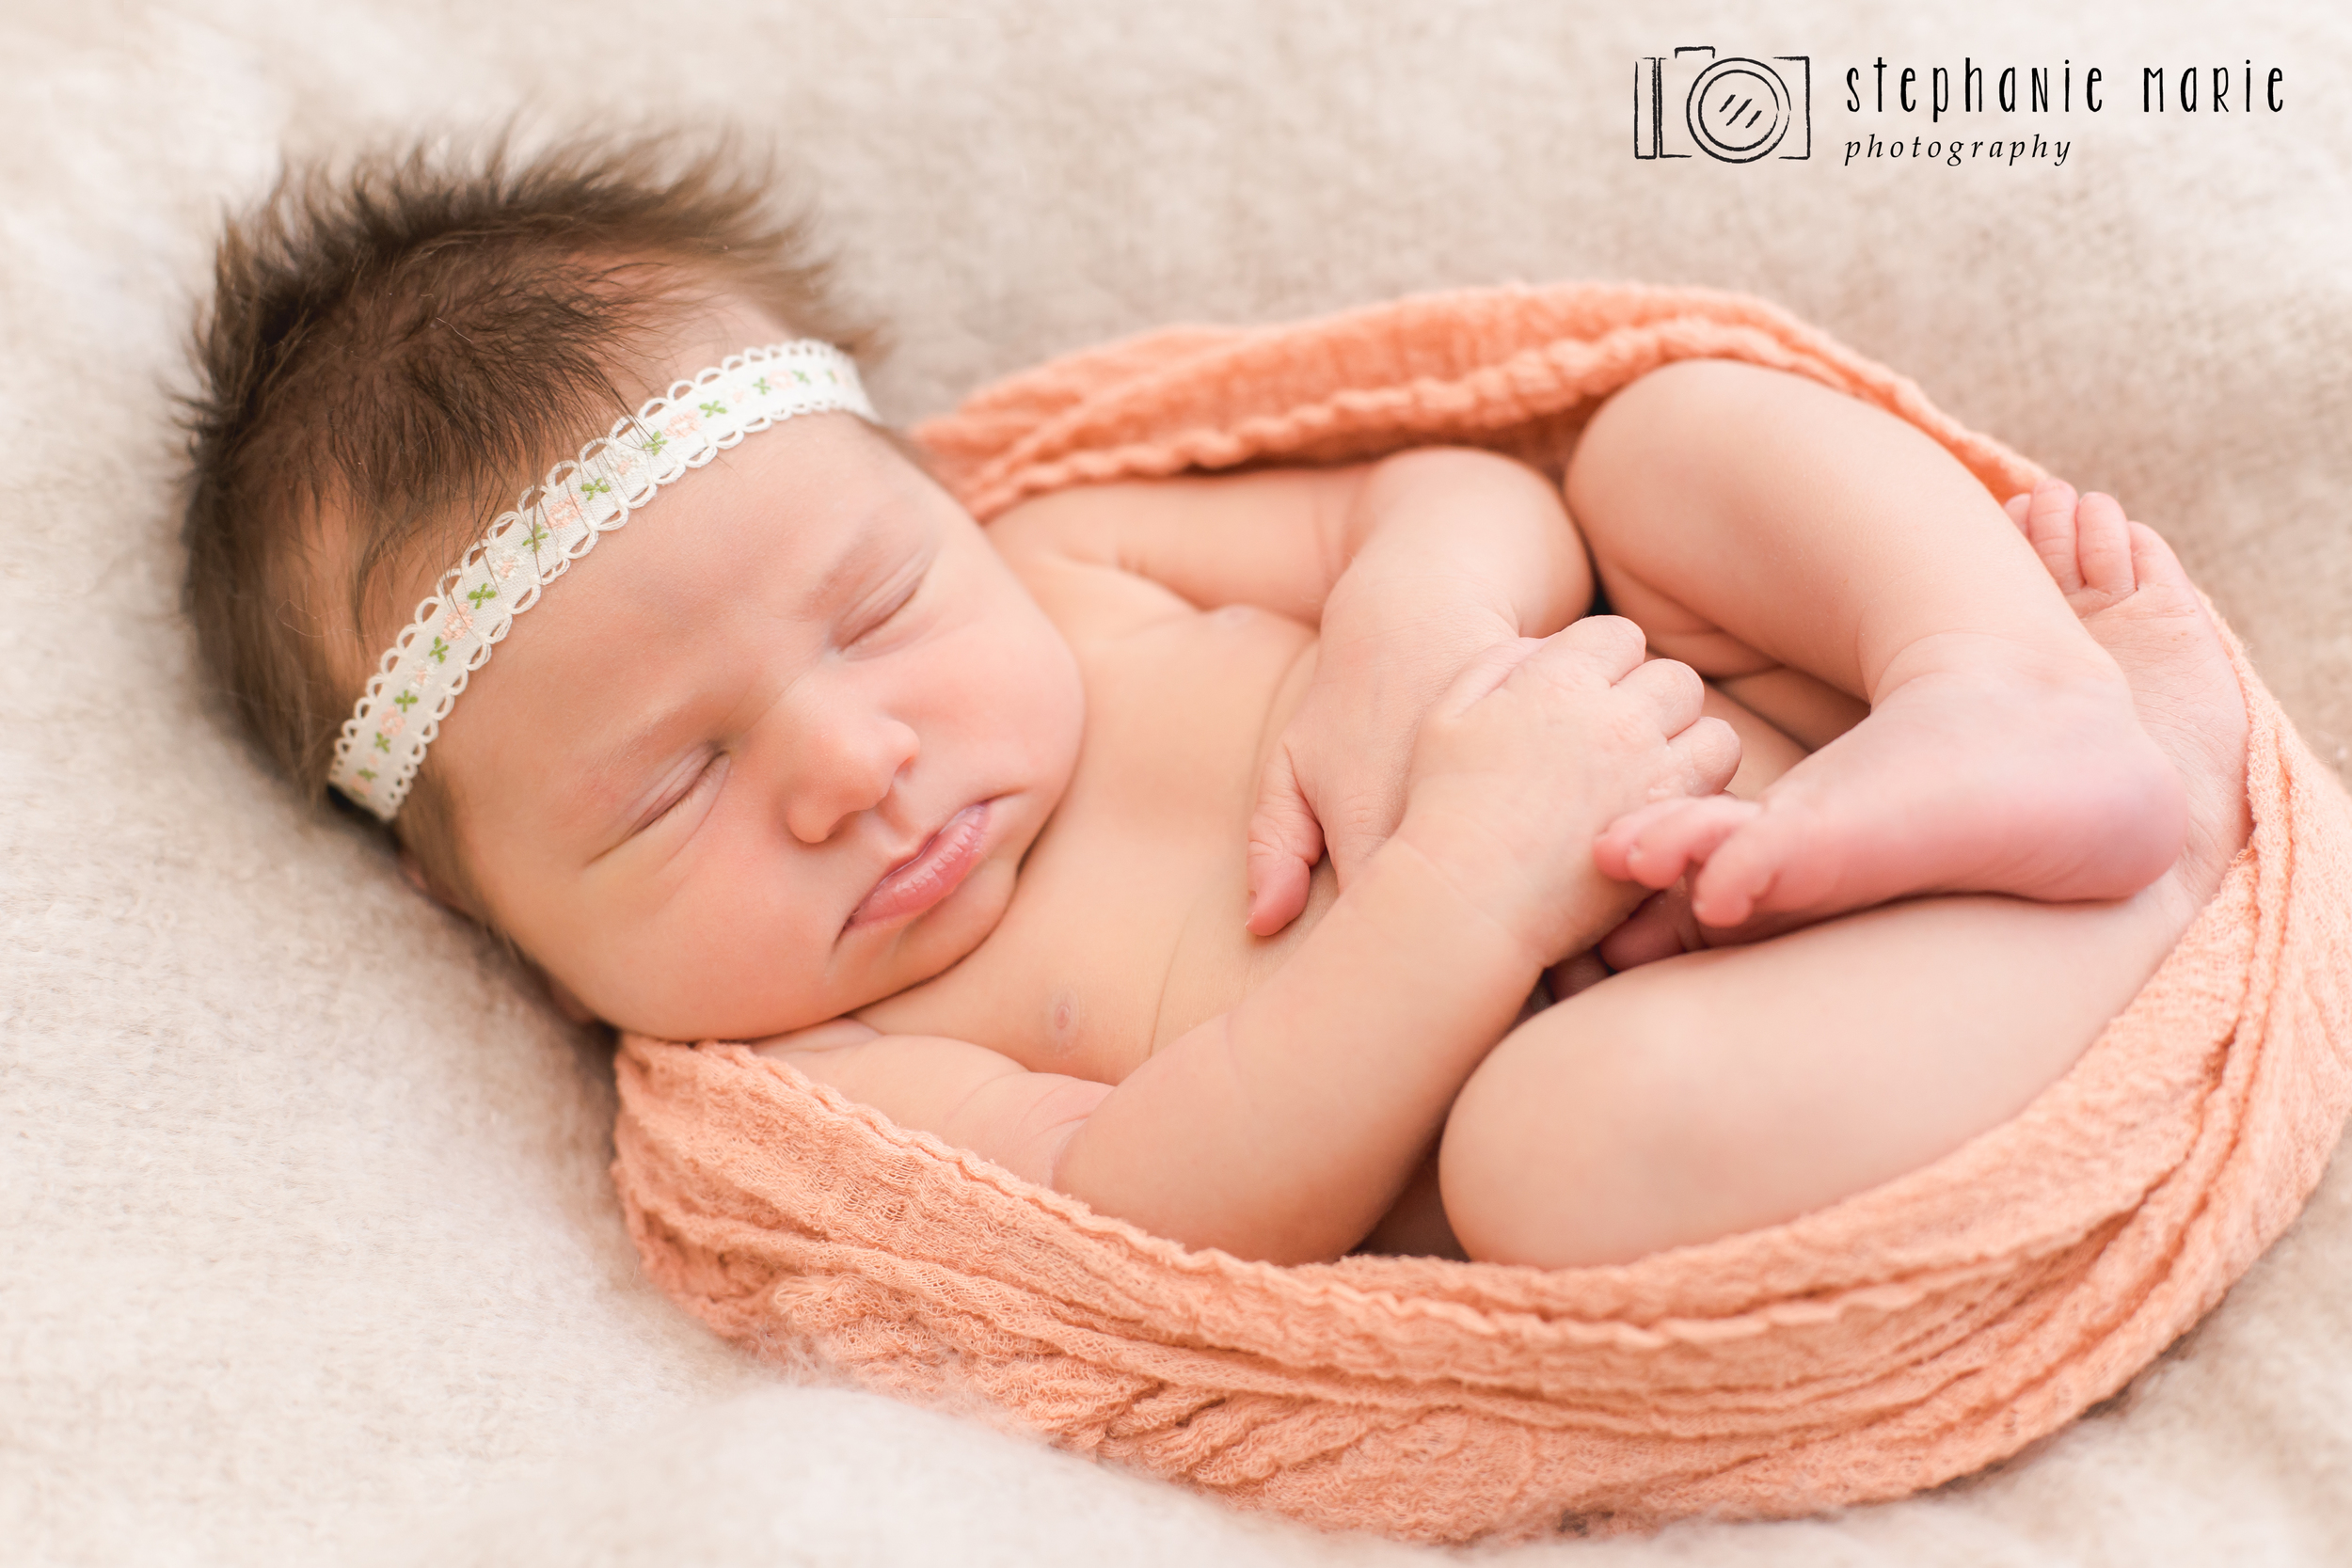 Stephanie Marie Photography, Centerville Ohio Portrait Photographer, Baby & Newborn Portraits